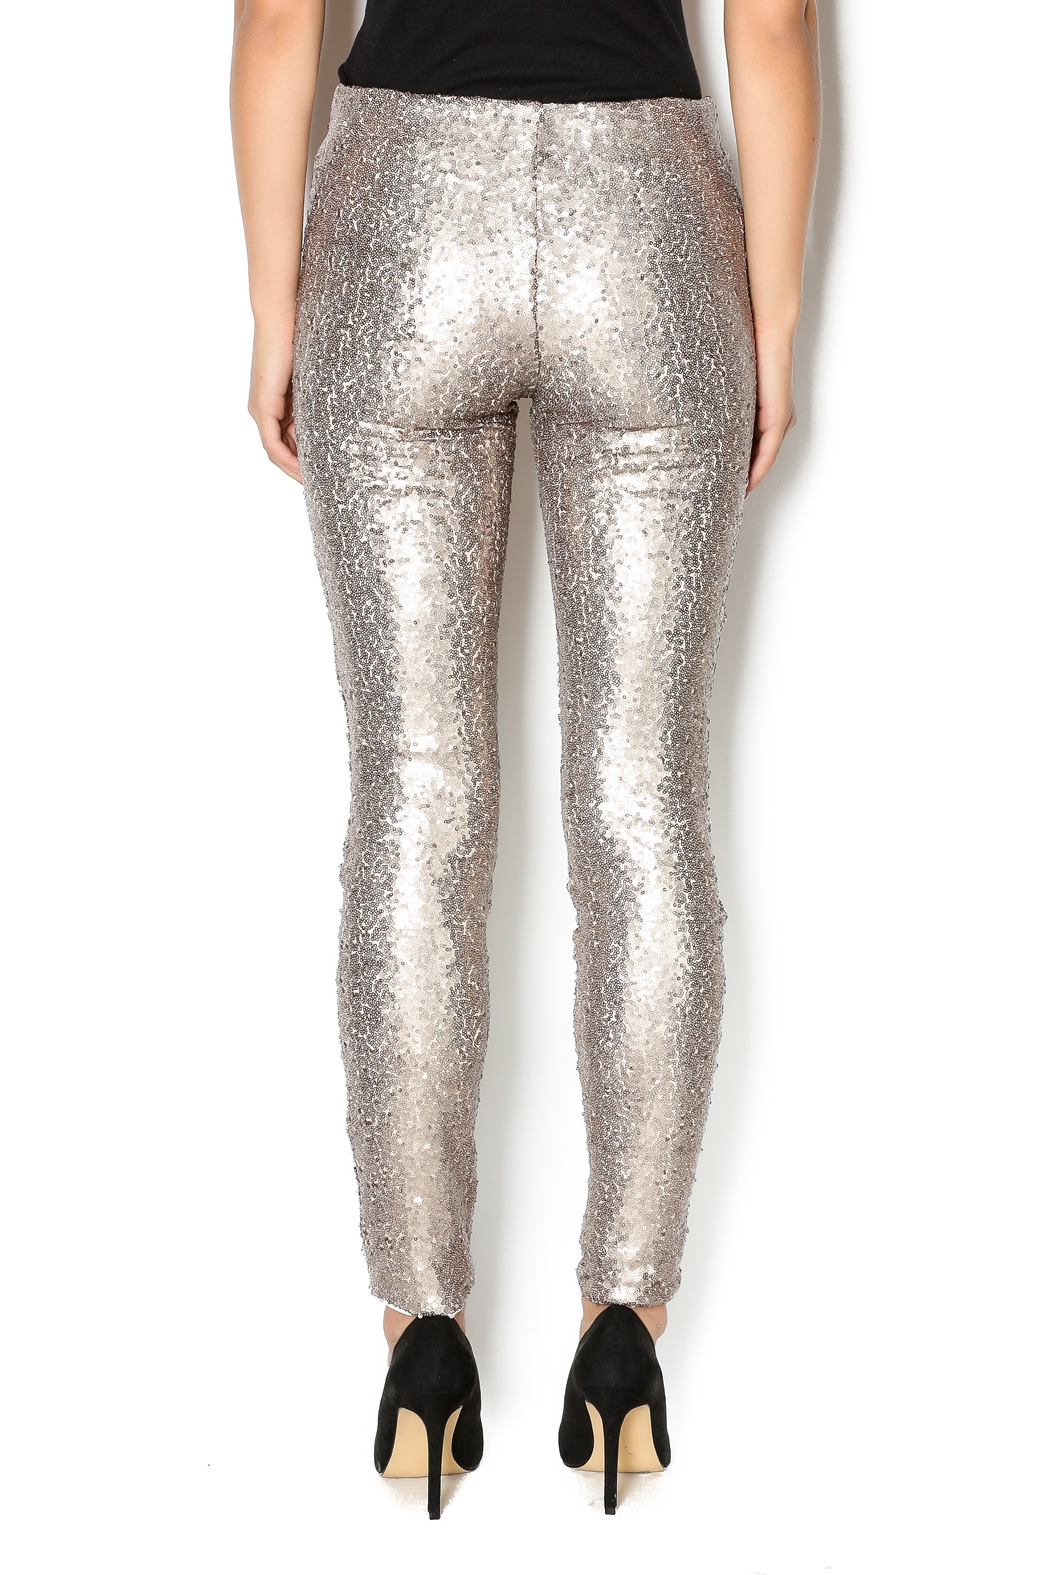 may and july inc Sequin Legging - Back Cropped Image